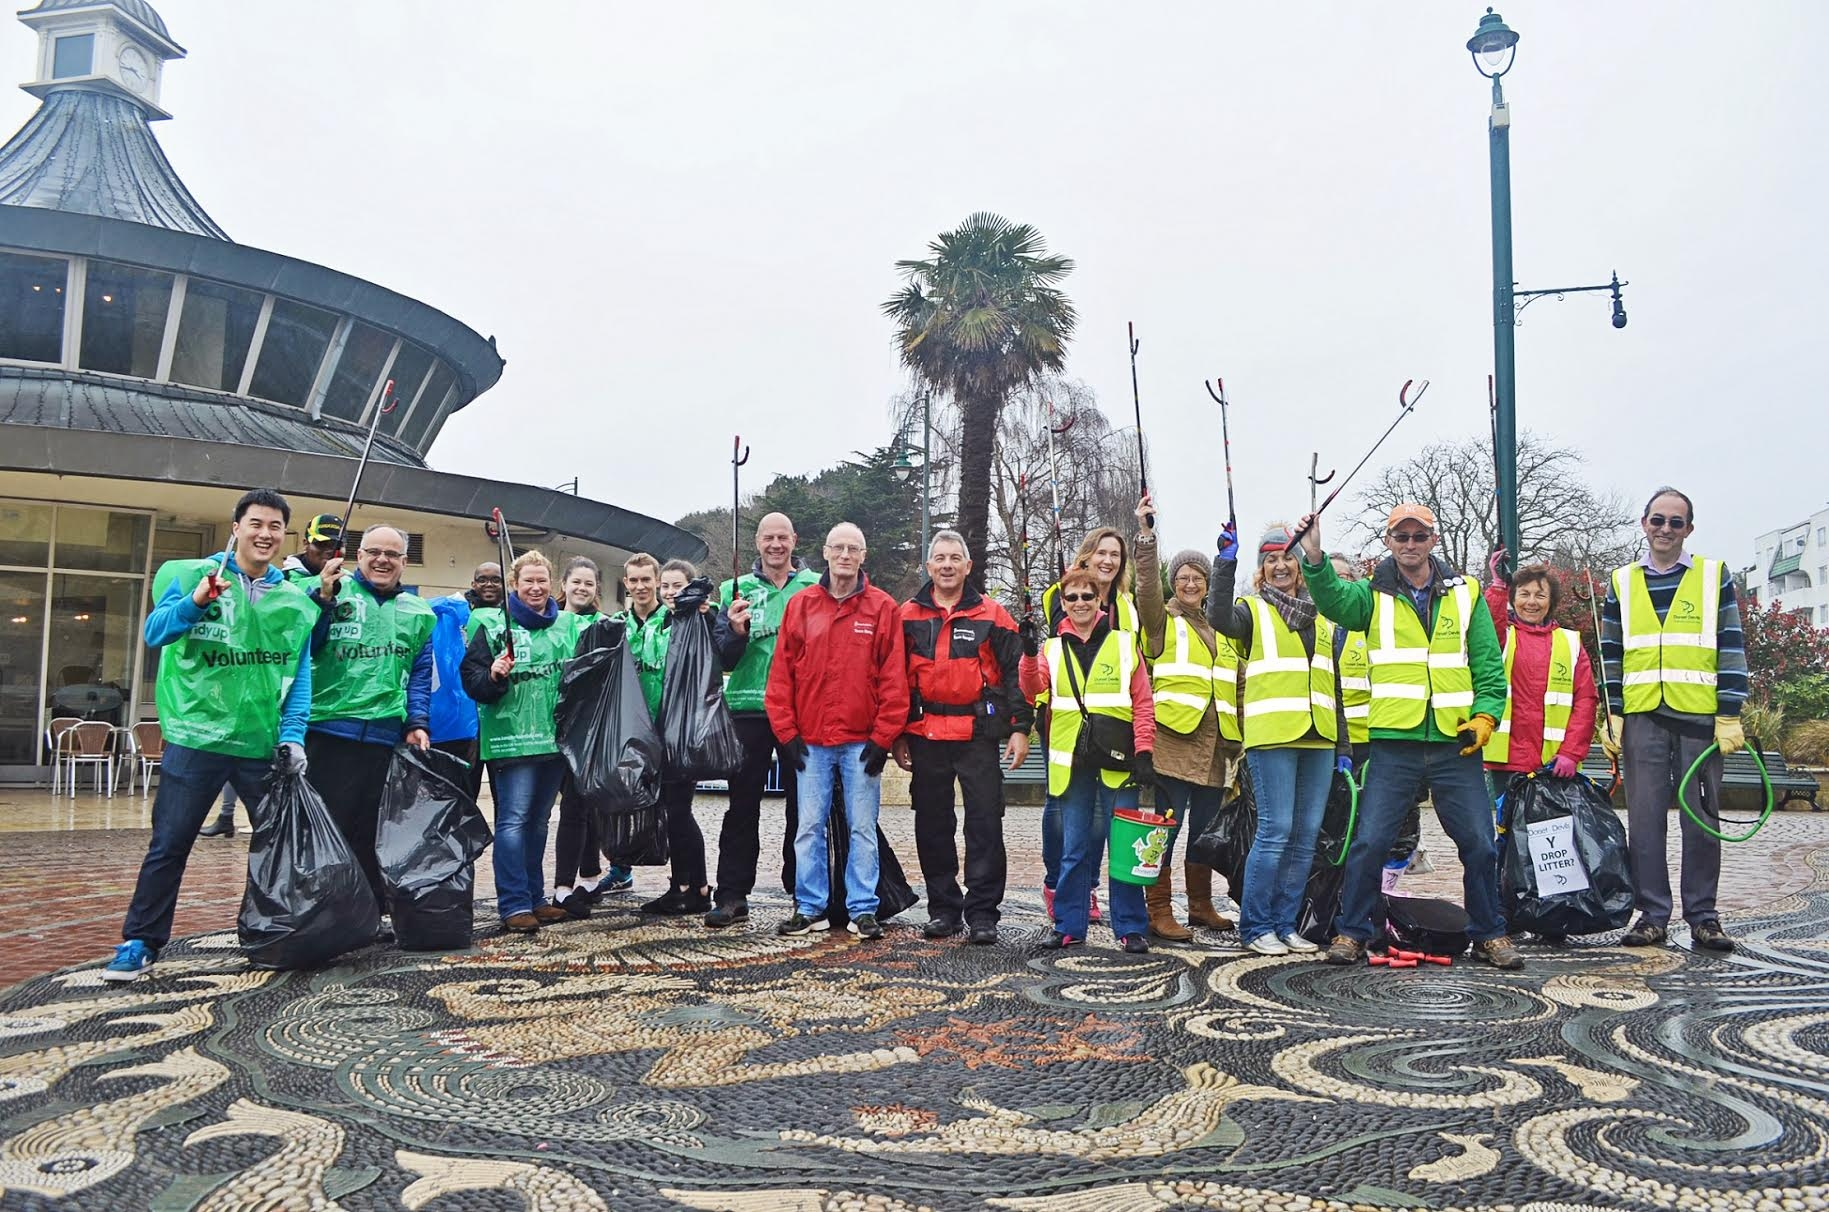 Volunteers for the Big Bournemouth Clean Up this May